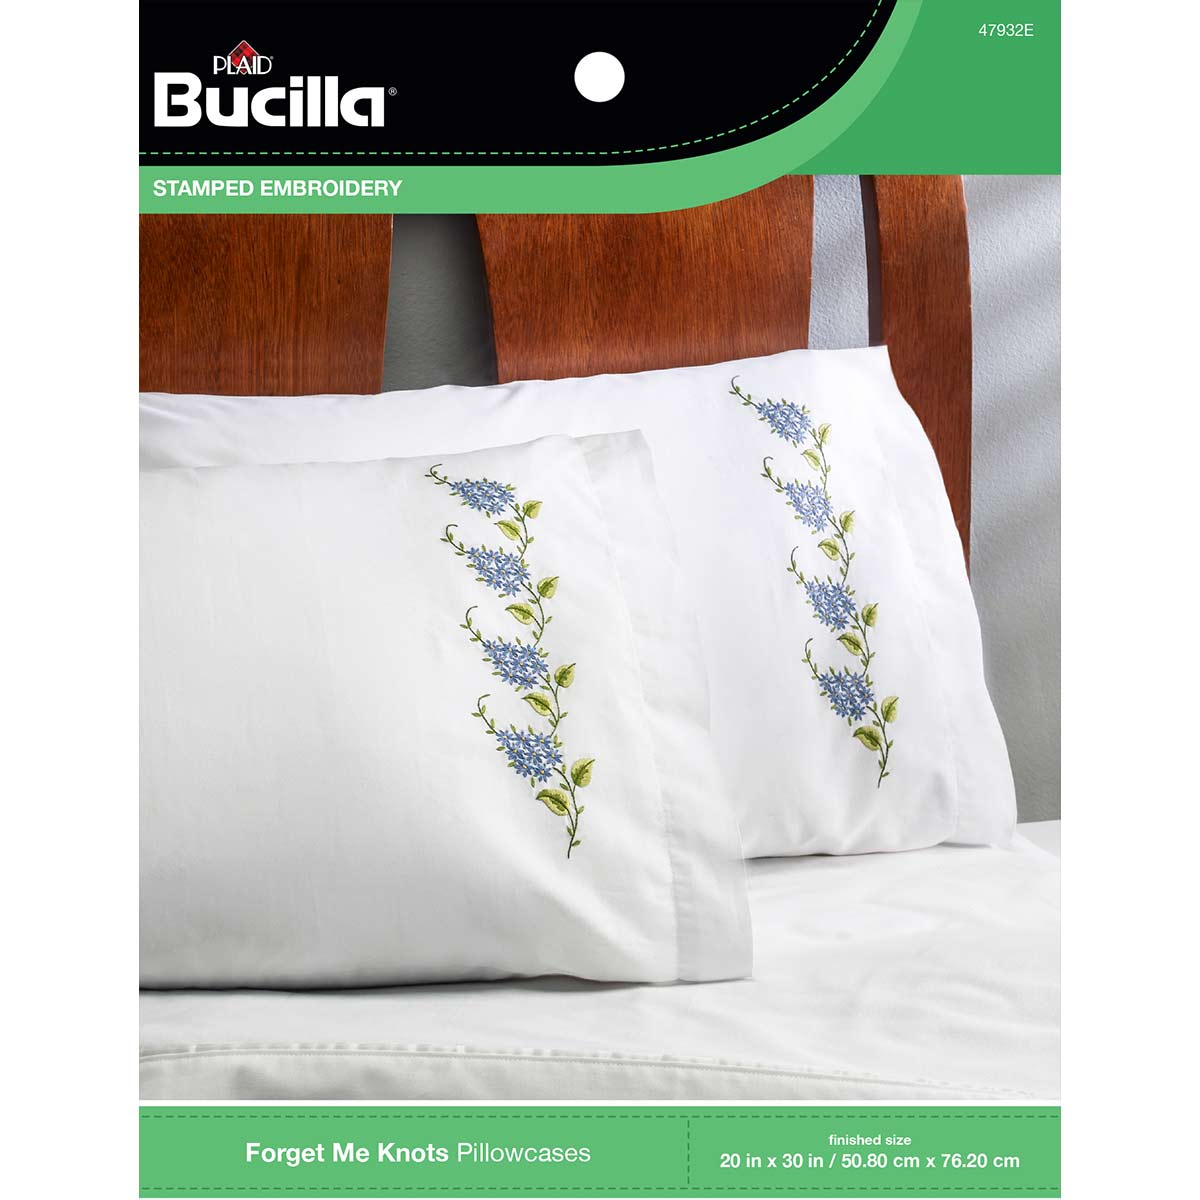 Bucilla ® Stamped Cross Stitch & Embroidery - Pillowcase Pairs - Forget Me Knots - 47932E